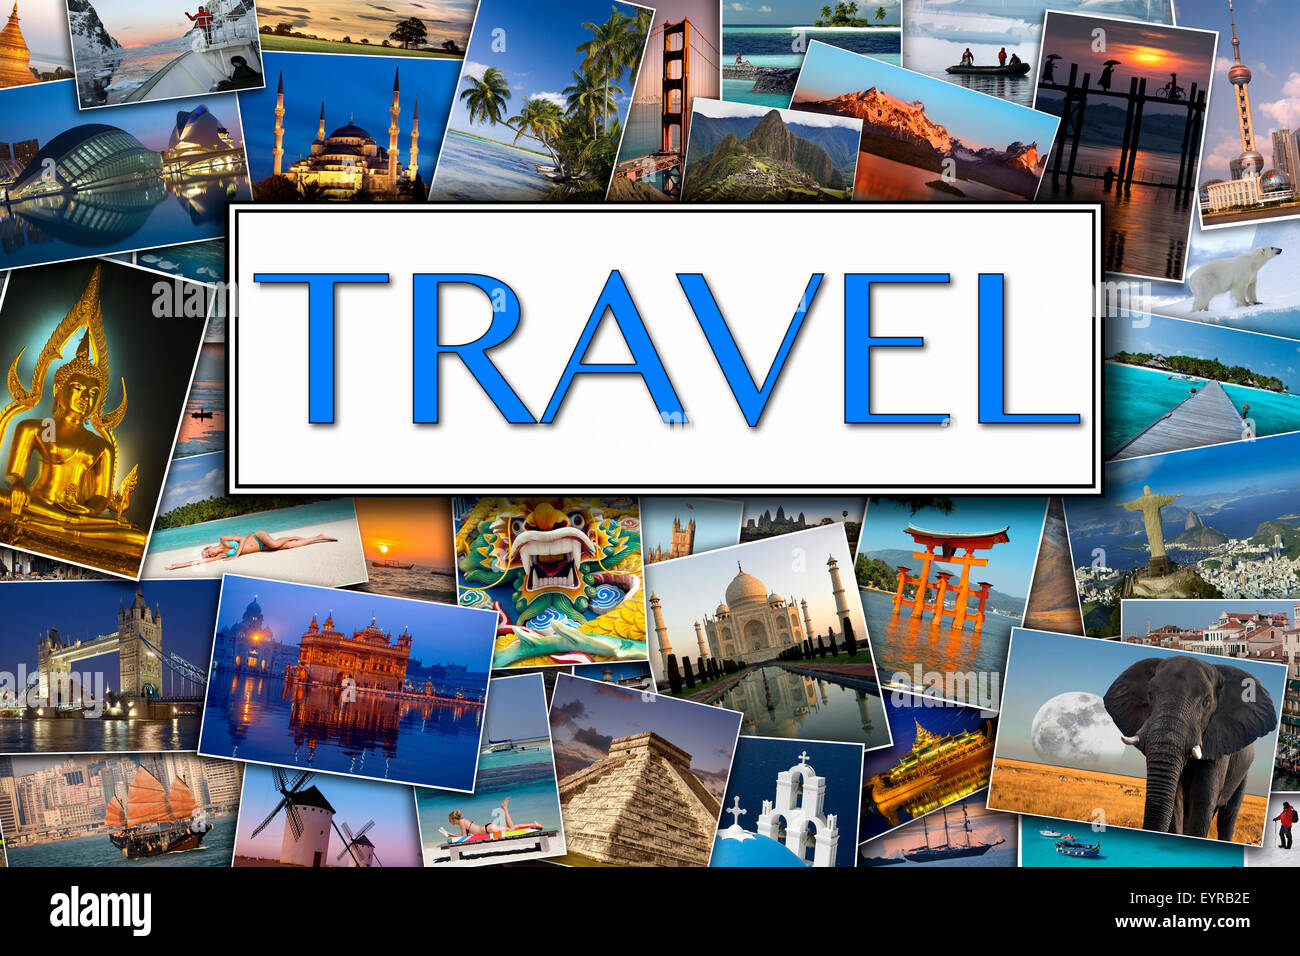 En-tête de page de voyage - Photos de voyage Destinations internationales Photo Stock